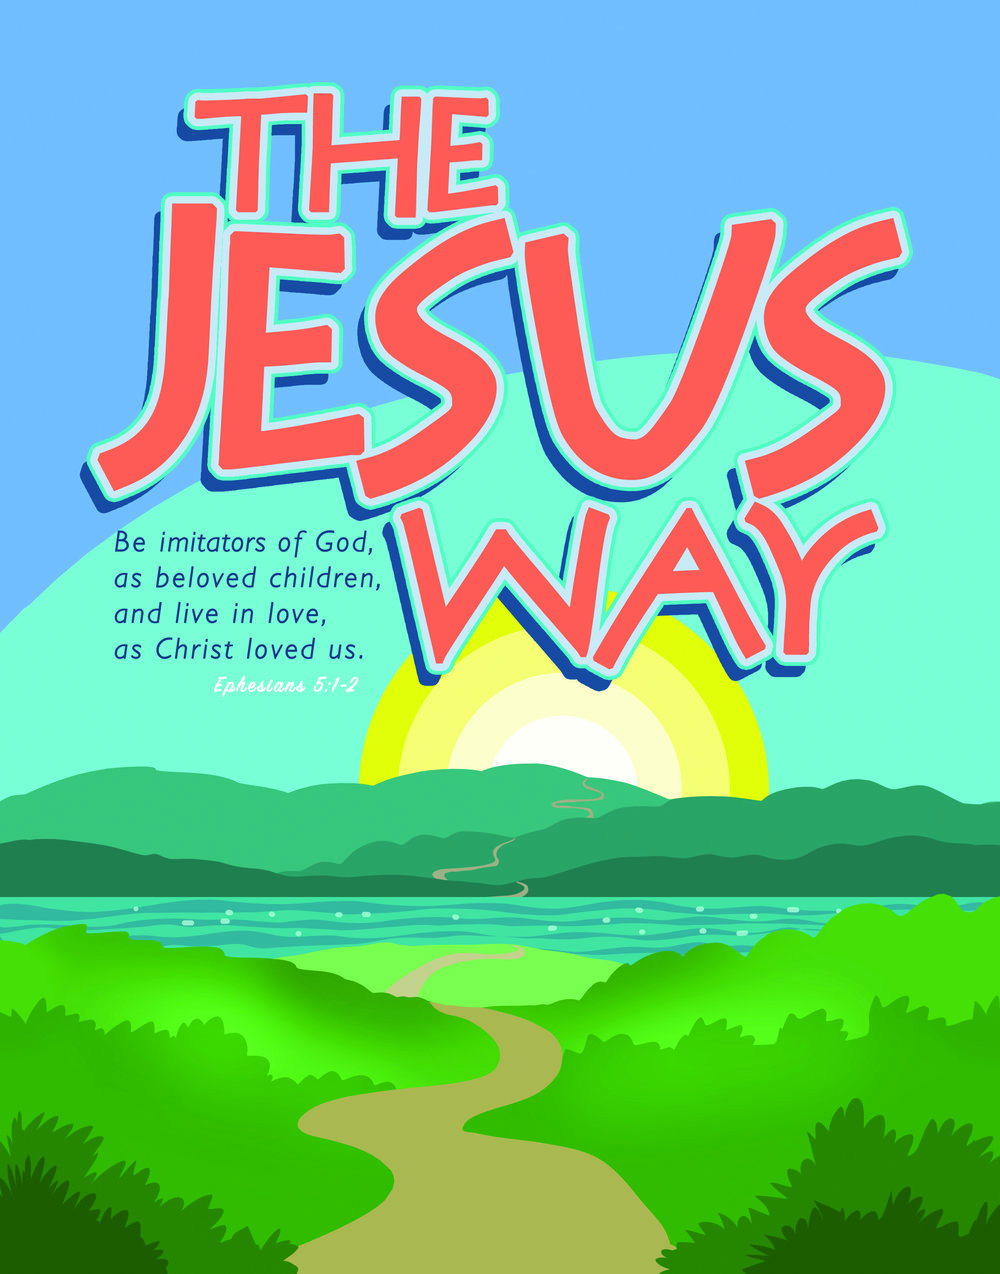 jesus way camp logo.jpg